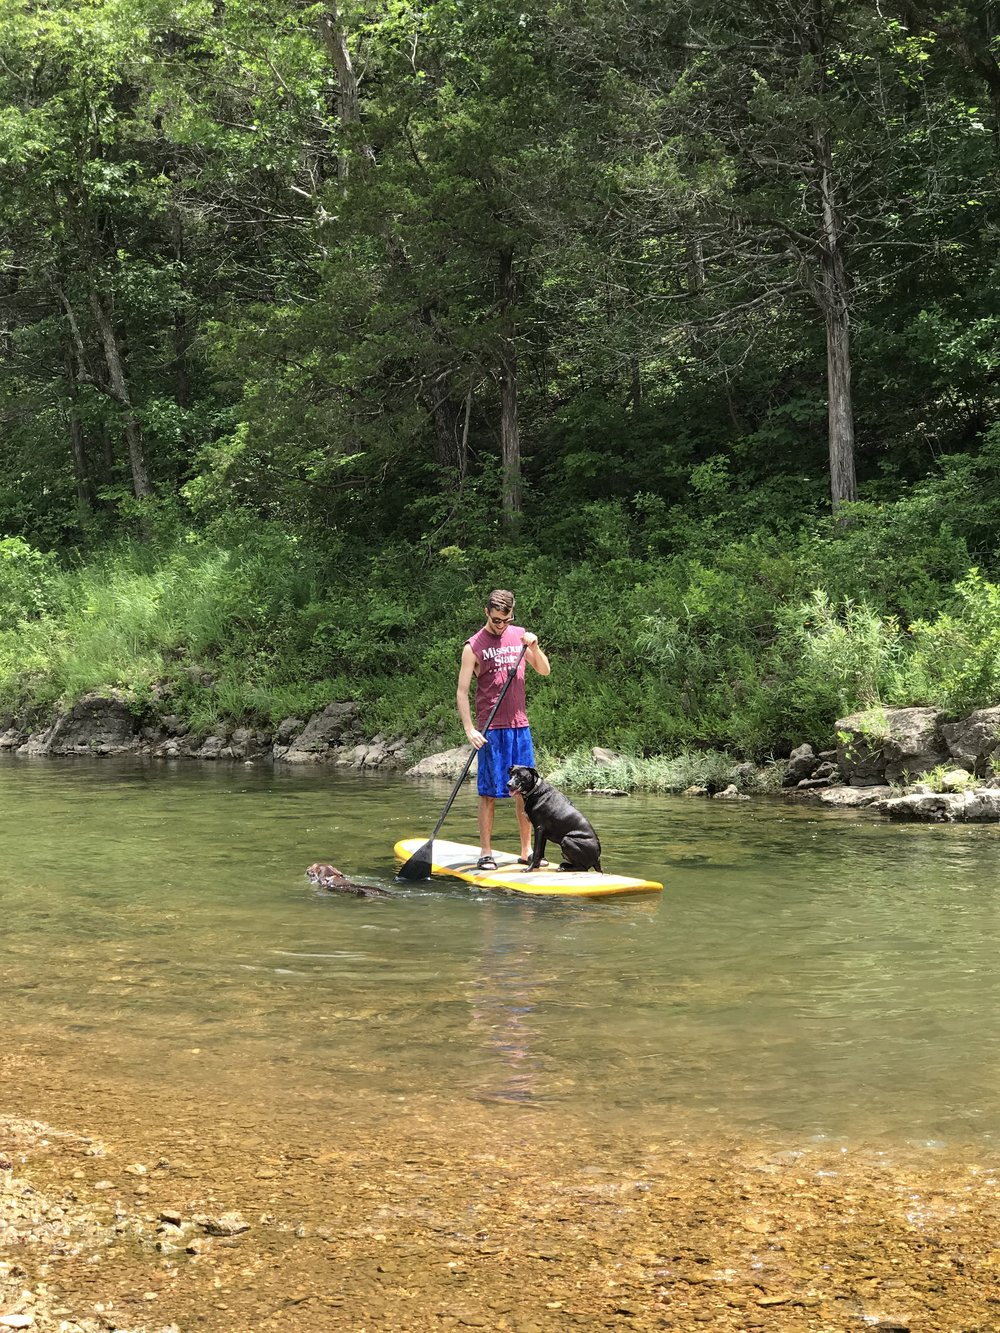 Paddle boarding on the Huzzah Creek